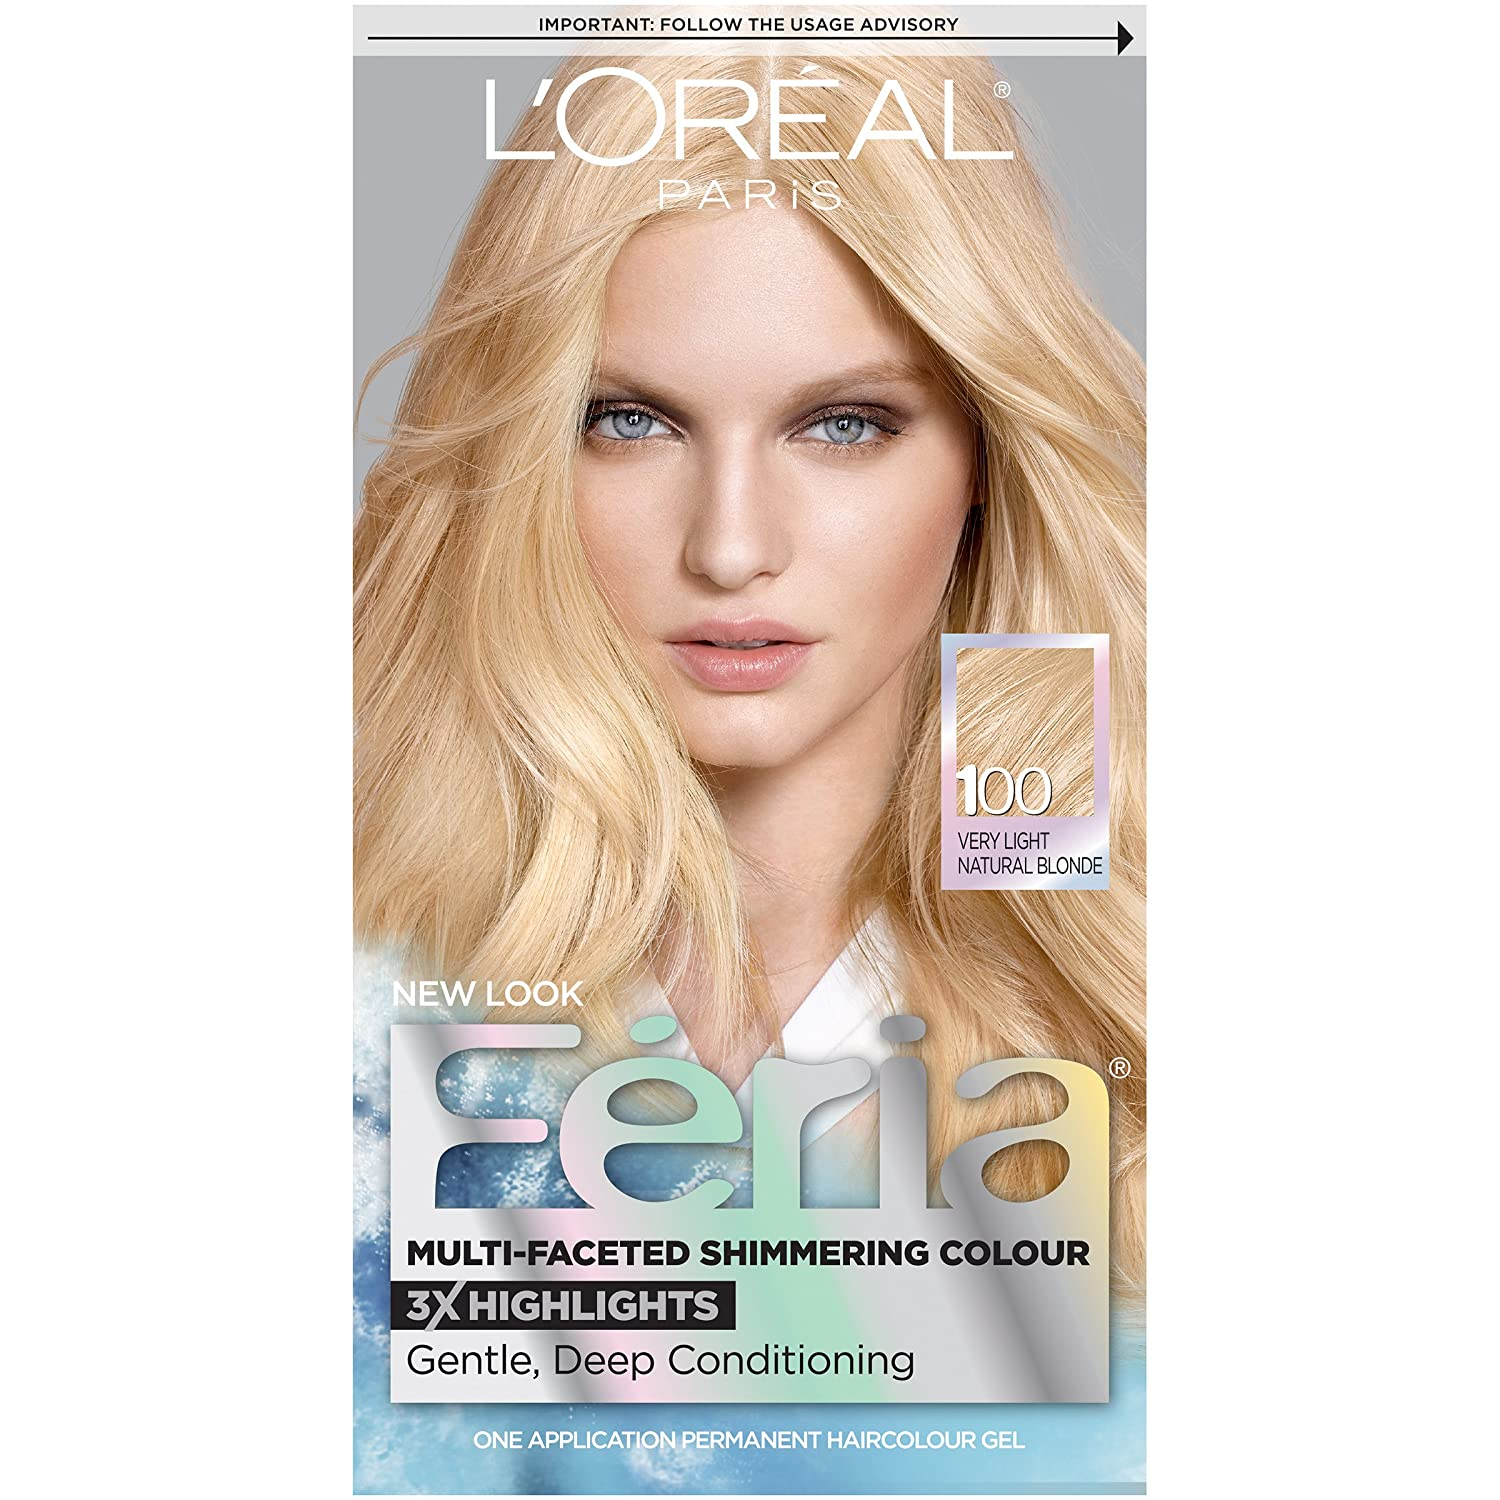 The look at home using l oreal paris feria smokey pastels in p2 smokey - Buy 100 Very Light Natural Blonde L Oreal Paris Feria Multi Faceted Shimmering Color 100 Pure Diamond Very Light Natural Blonde Online At Low Prices In